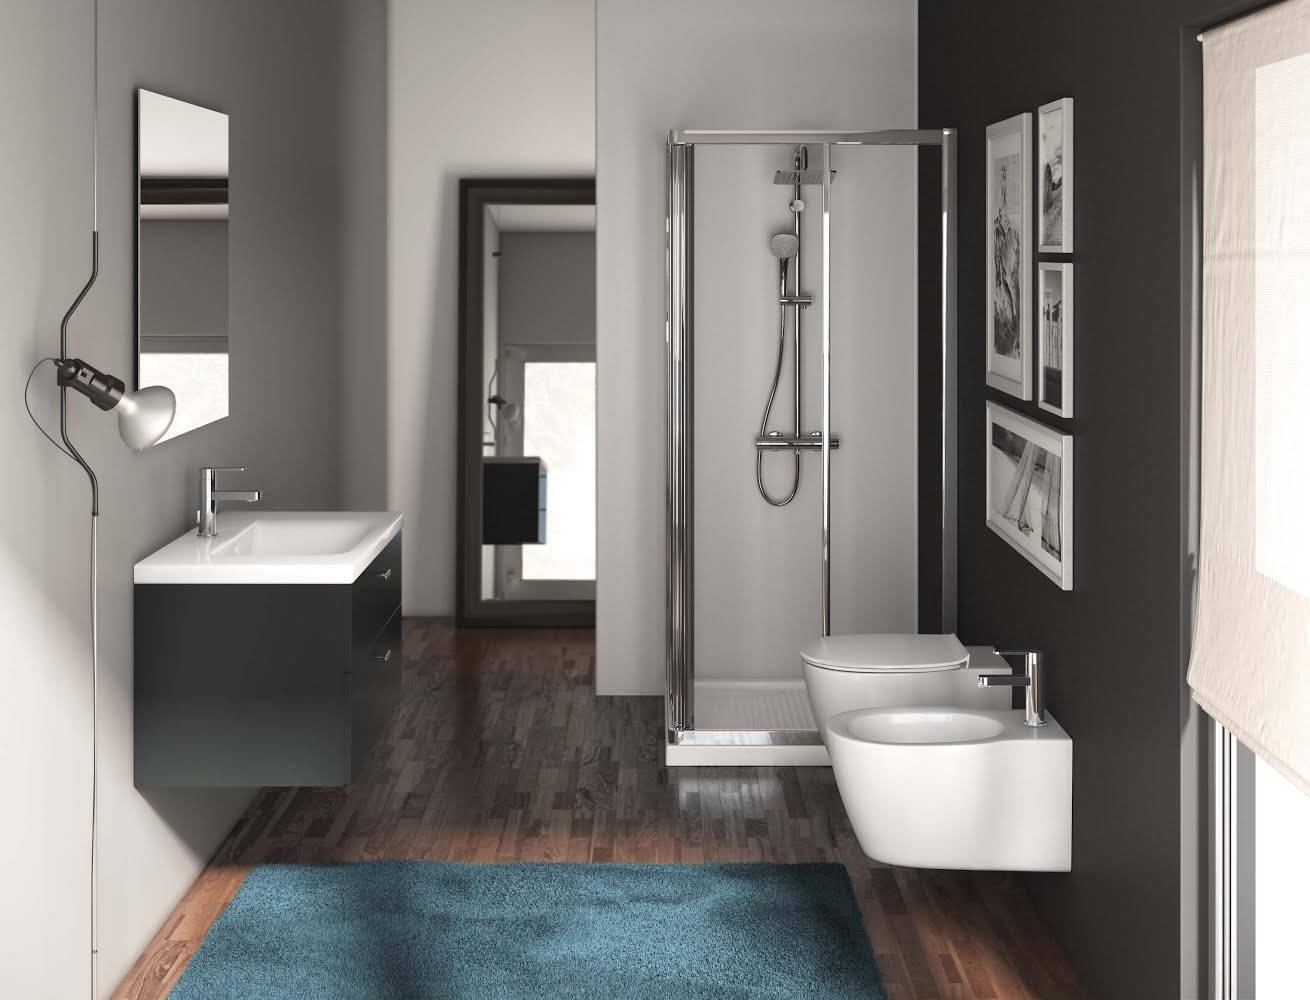 Casa immobiliare, accessori: Ideal standard bagno